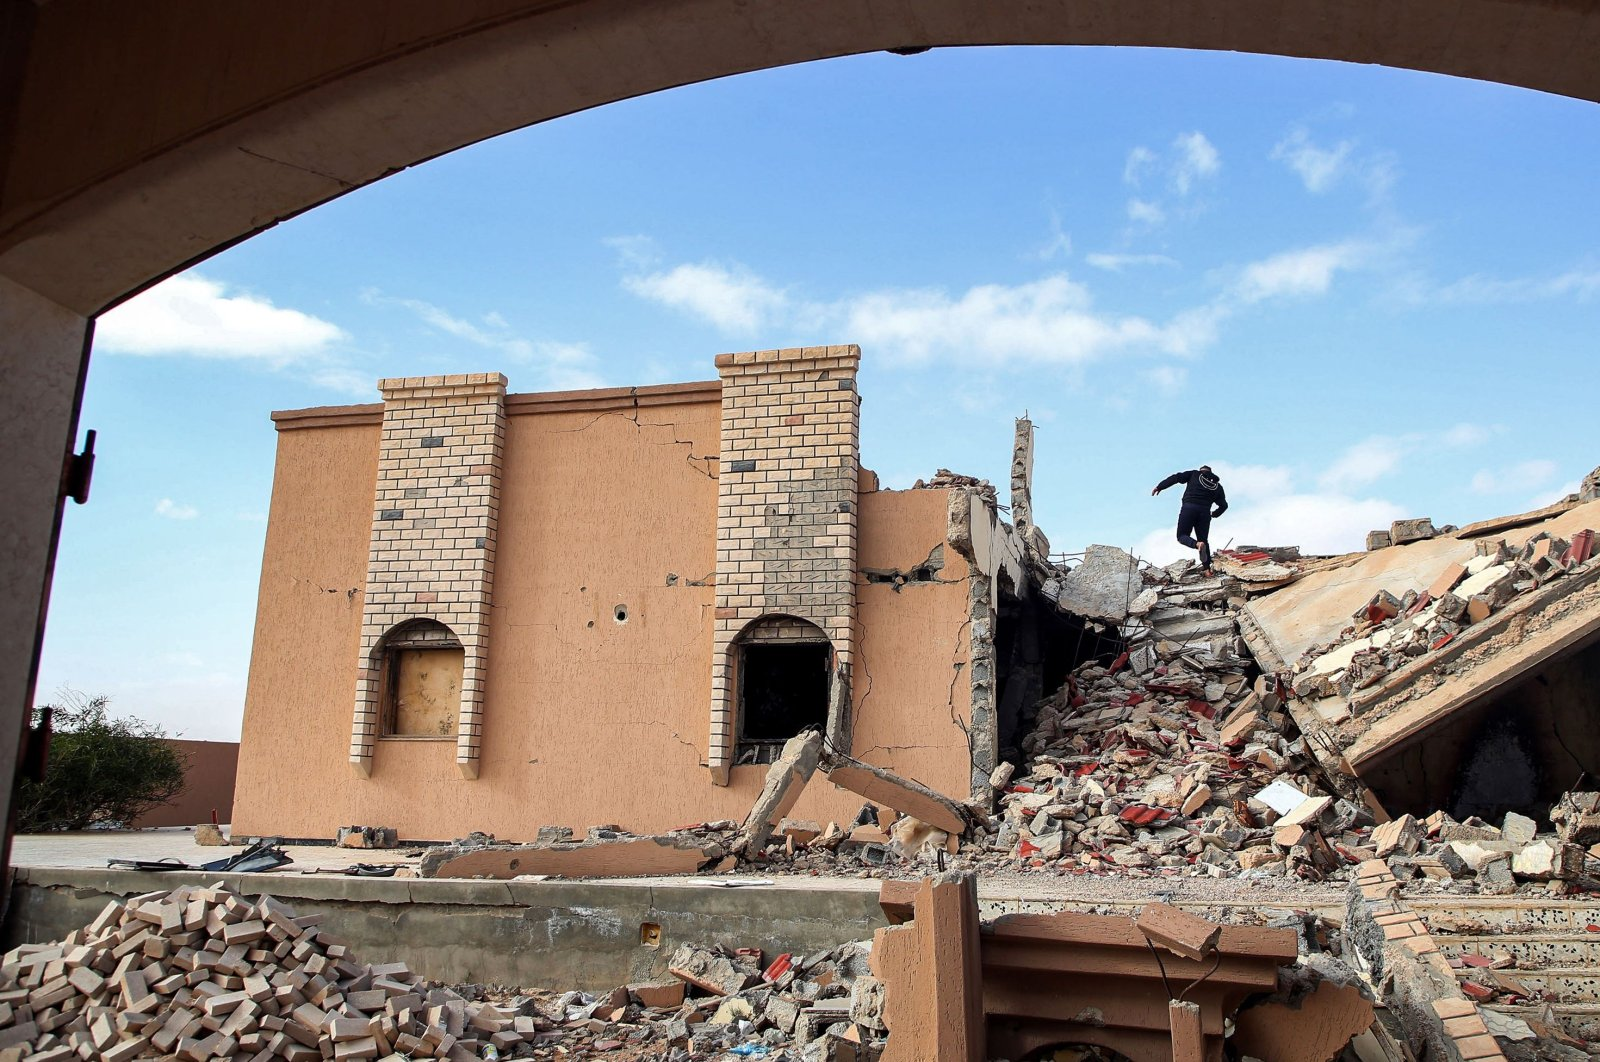 A youth climbs the rubble of a destroyed building in the city of Tawergha, some 200 kilometers (125 miles) east of Libya's capital close to the port city of Misrata, on Dec. 12, 2020. (AFP Photo)